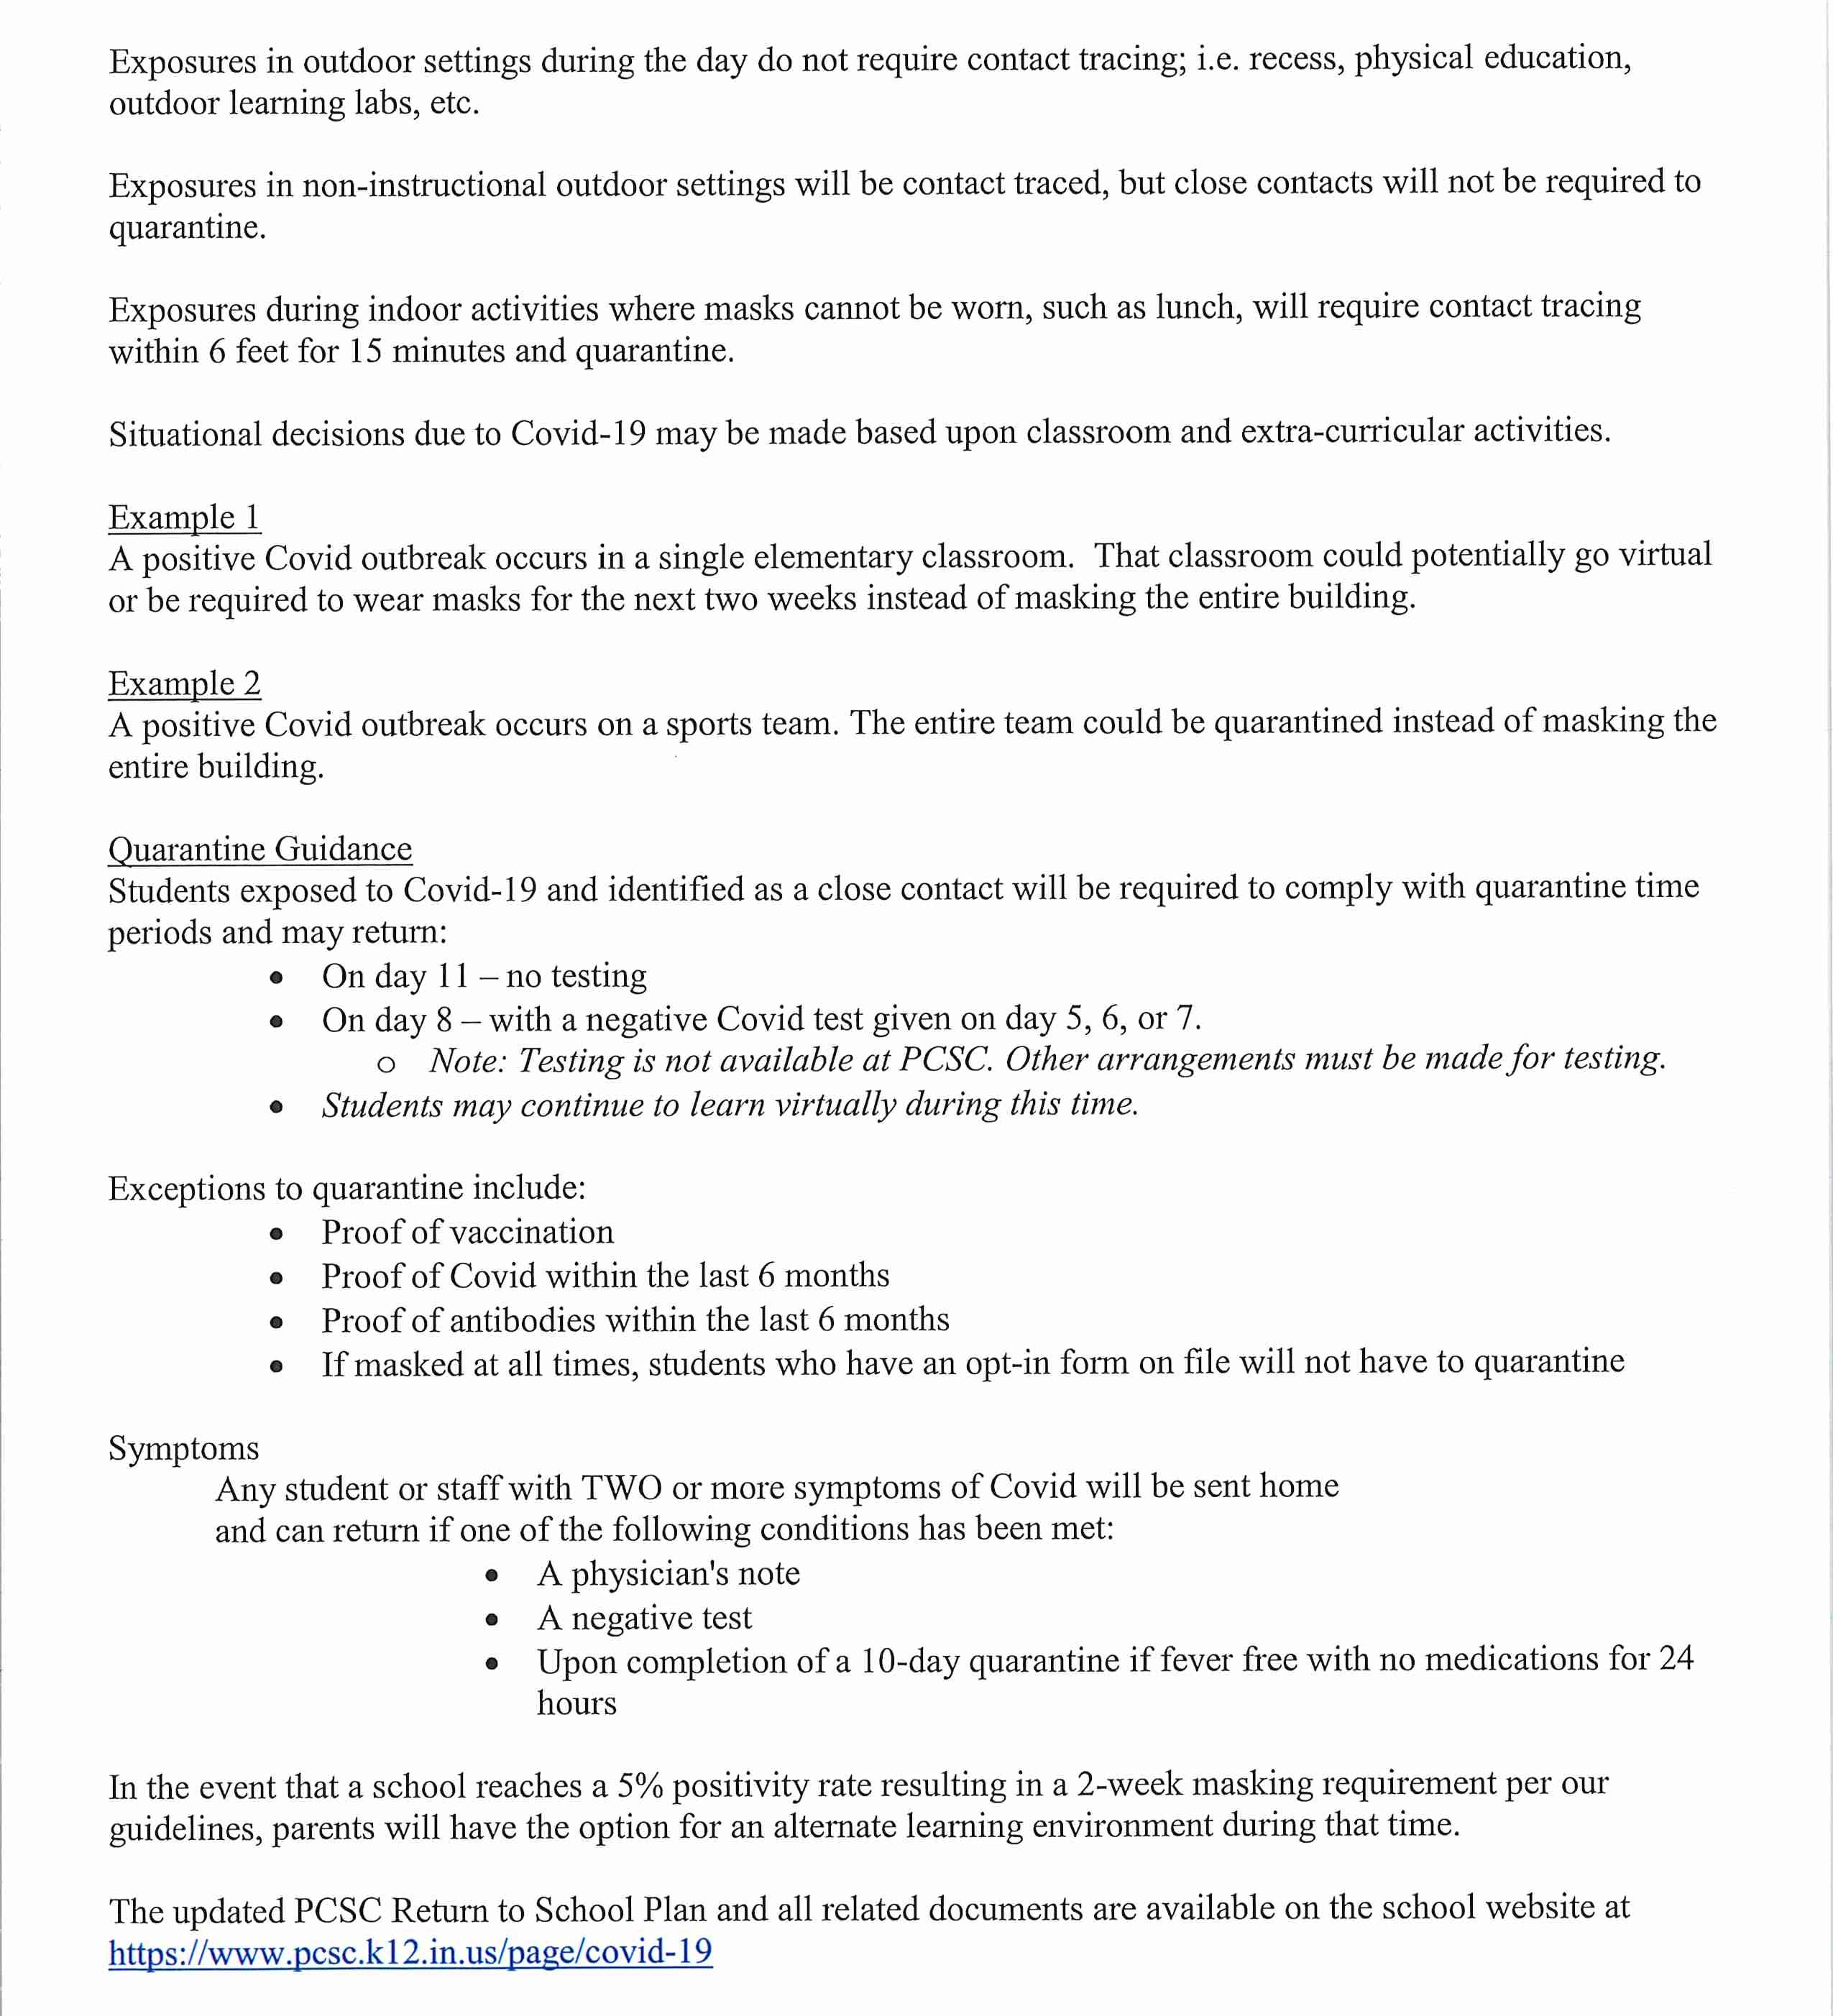 Covid Update letter, page 2